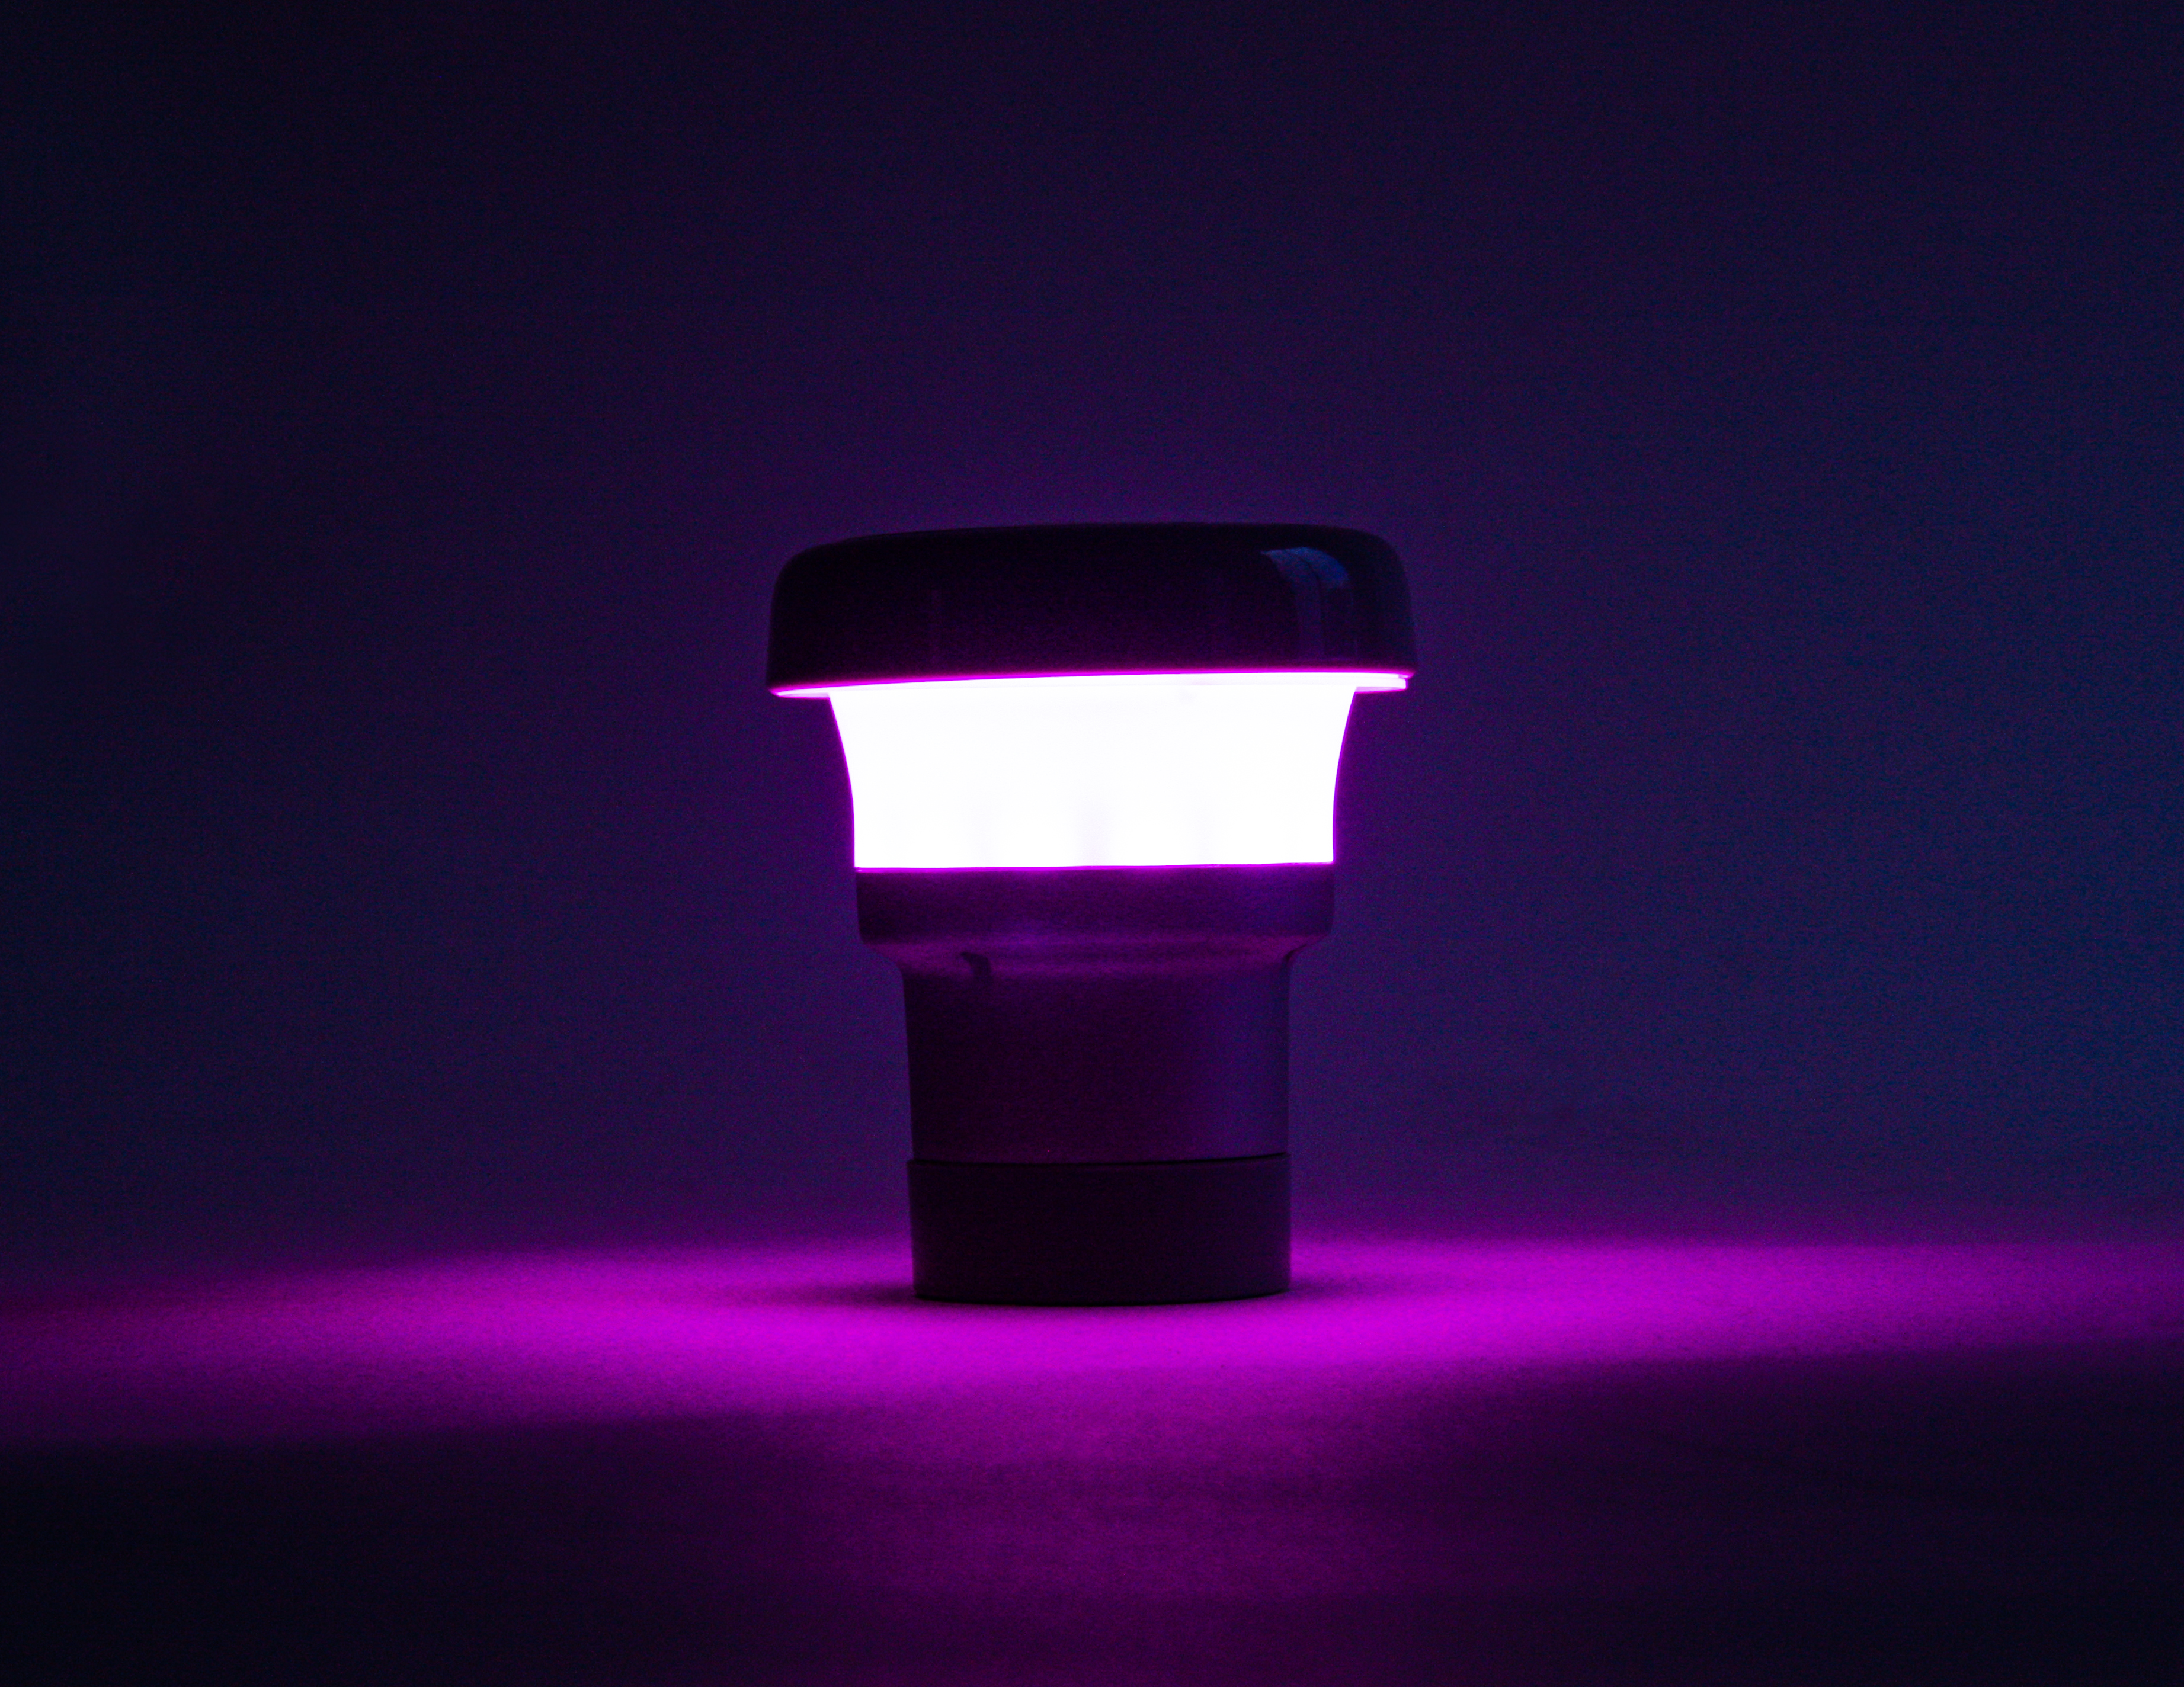 battery operated, LED table lamp